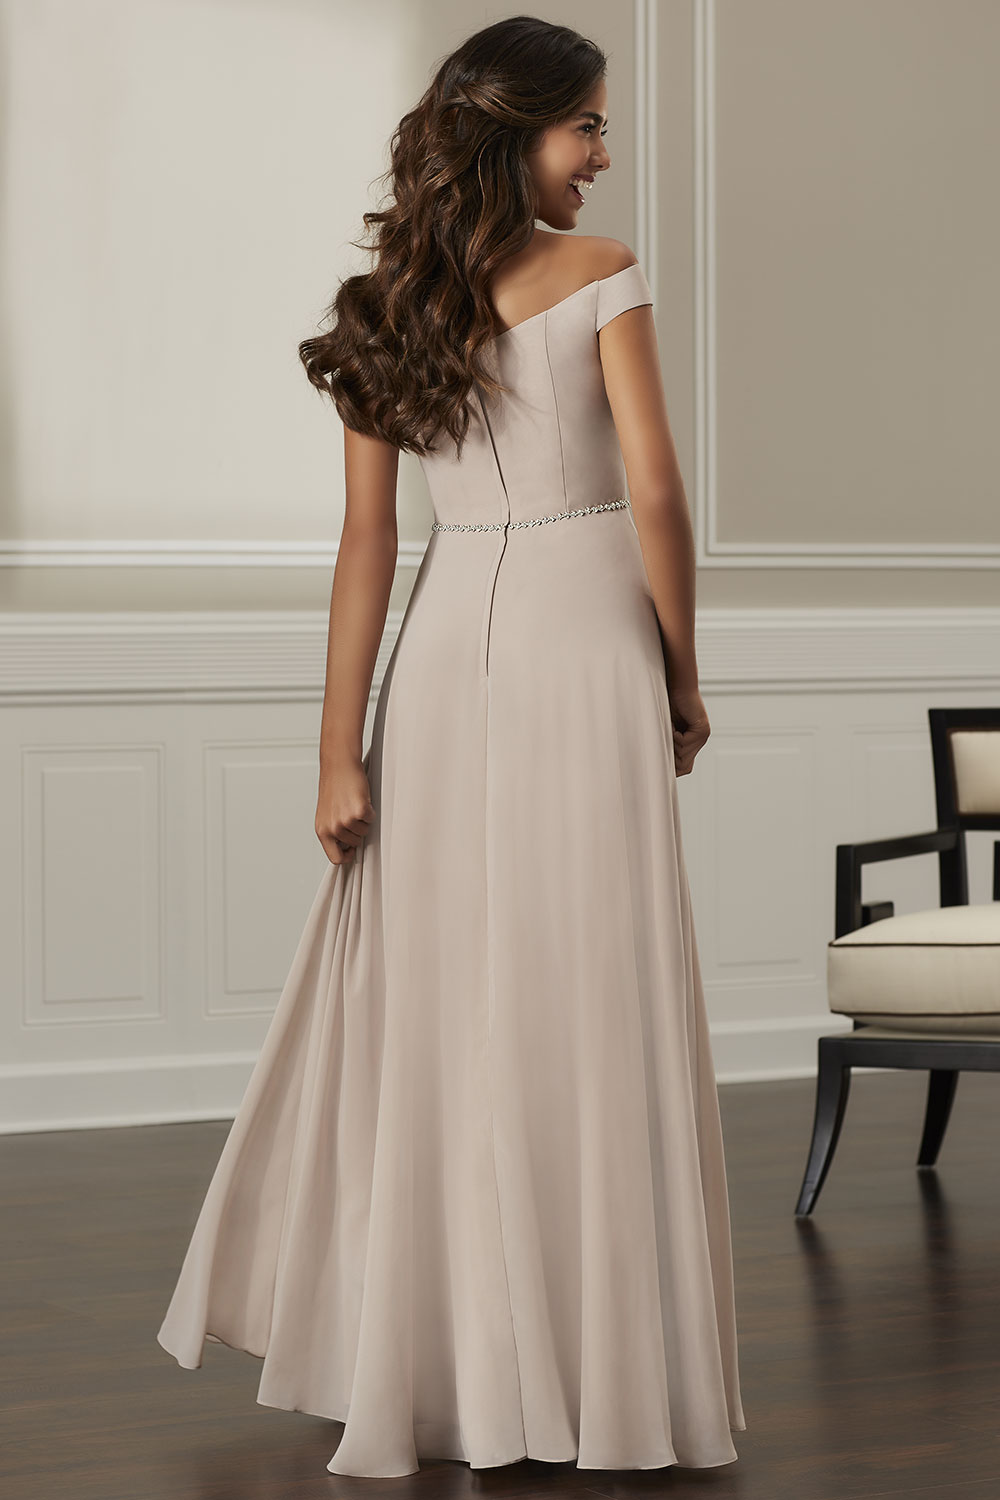 bridesmaid-dresses-jacquelin-bridals-canada-26818